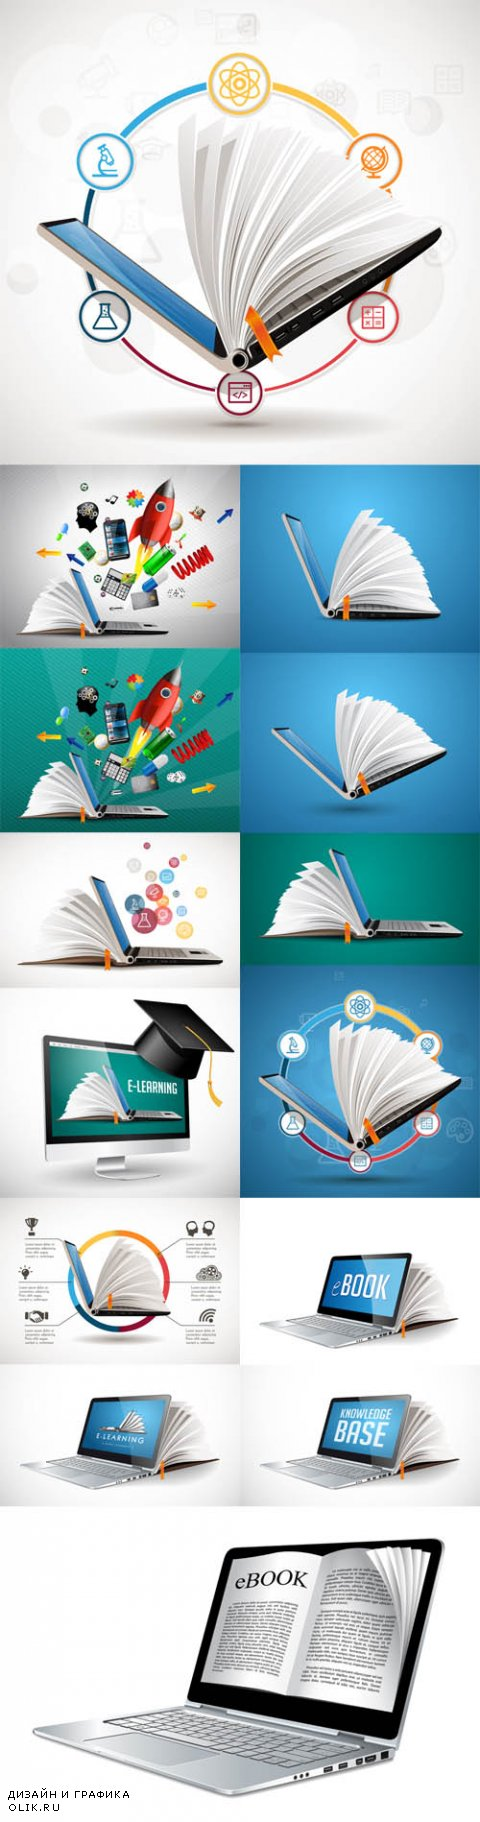 Vector Elearning Concept Online System